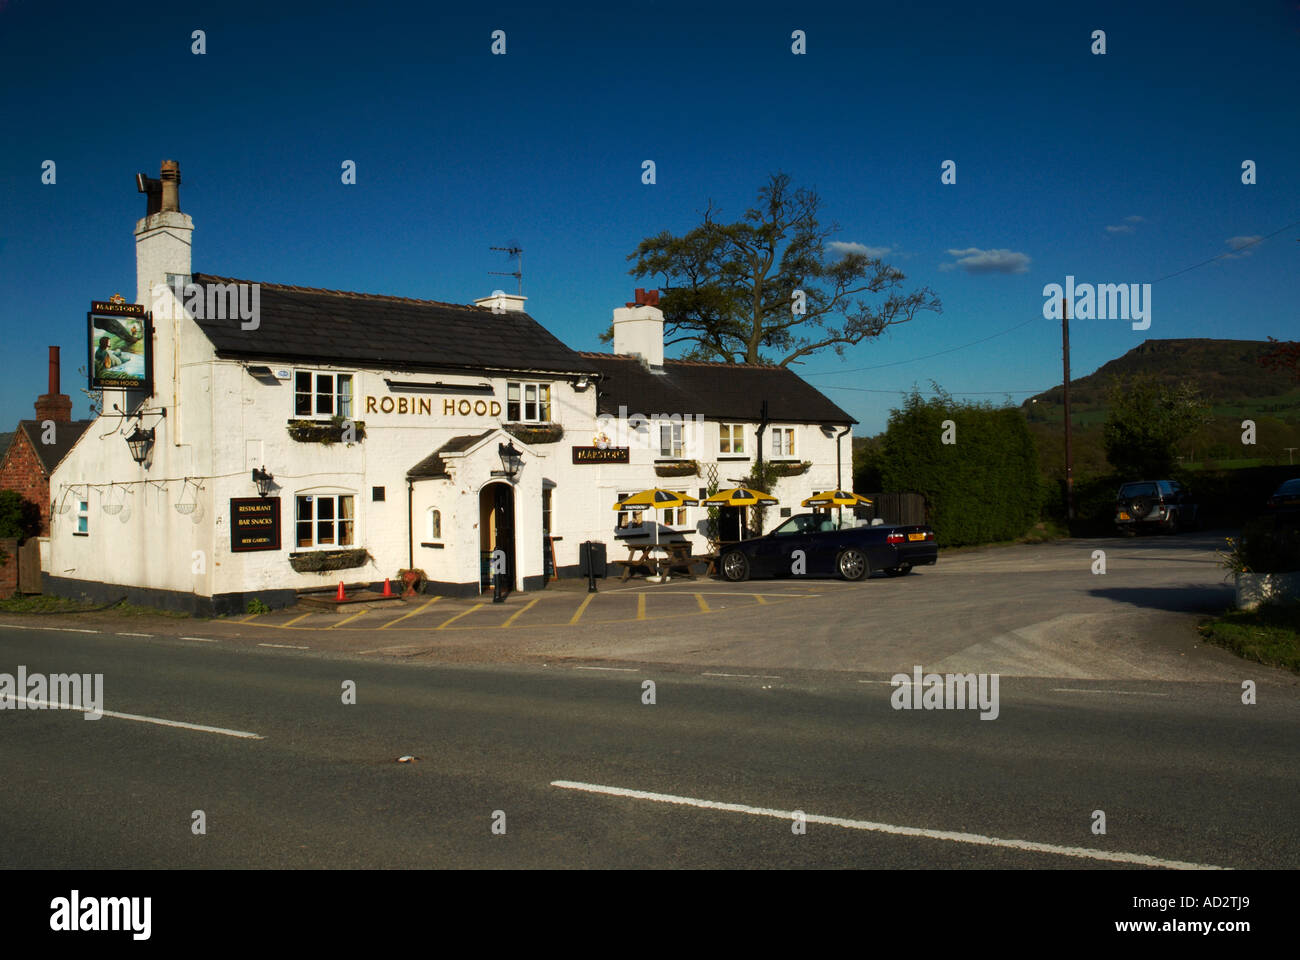 The Robin Hood Public House Buglawton Nr Congleton Cheshire UK - Stock Image